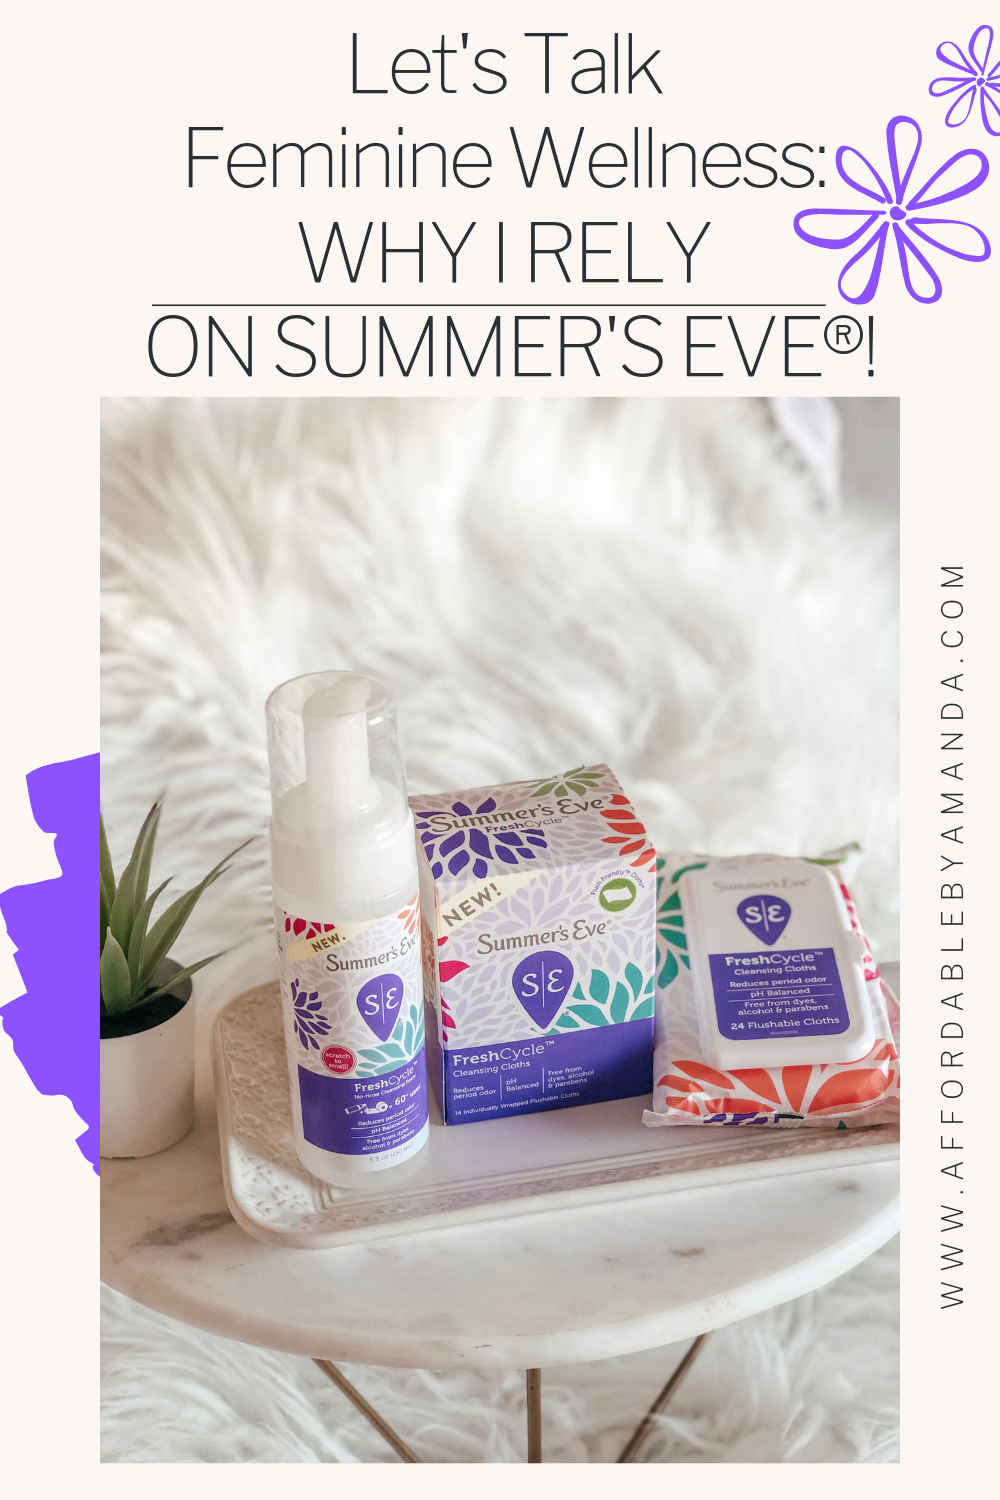 let's talk feminine wellness with summers eve